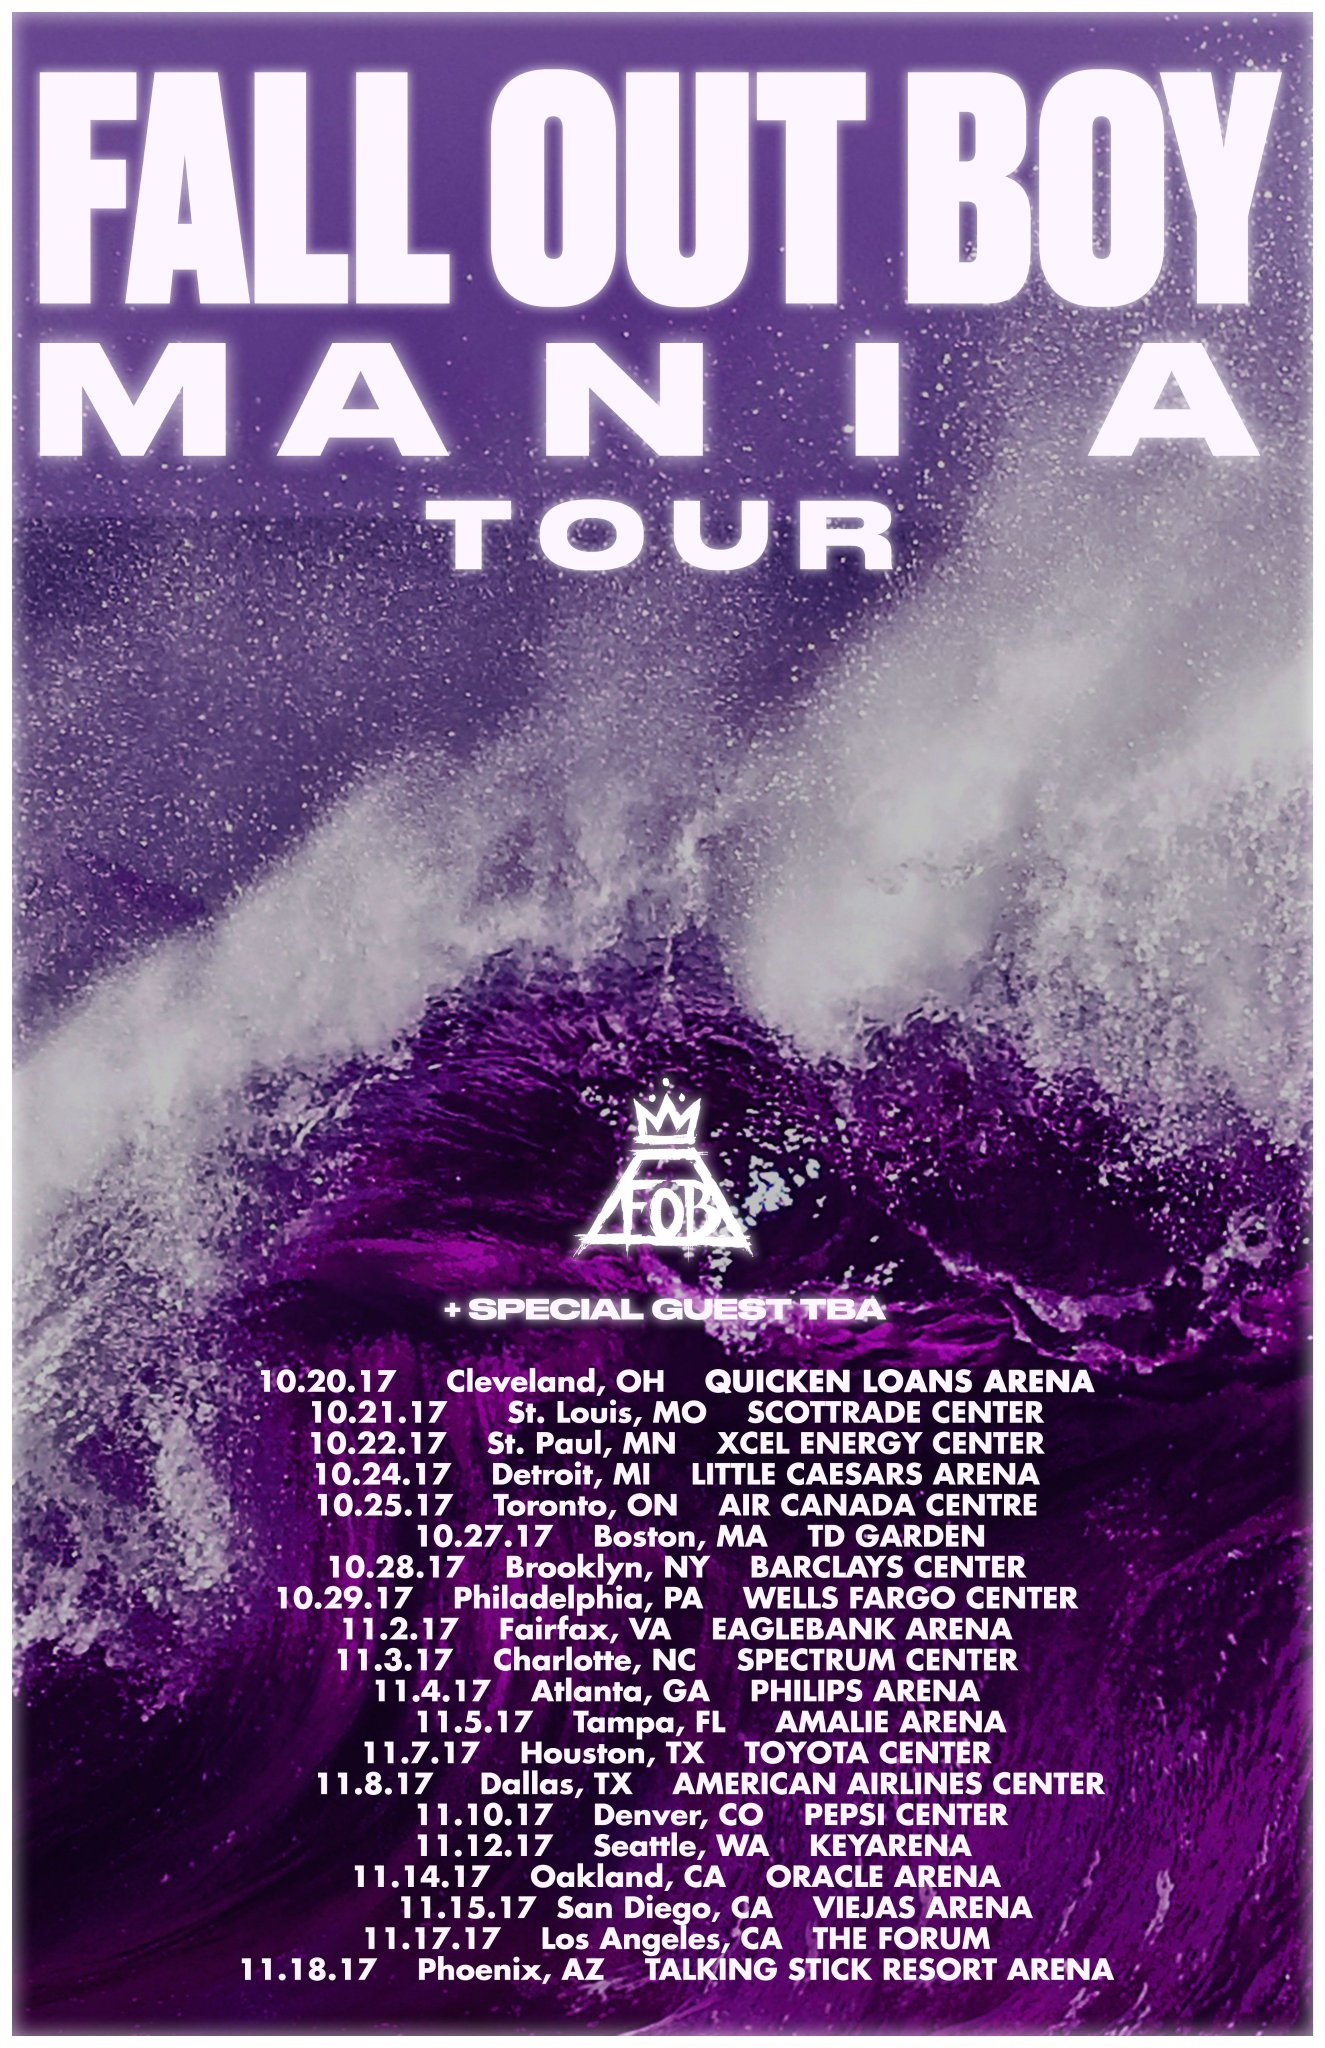 Fall Out Boy Wallpaper Mania Fall Out Boy On Twitter Quot M A N I A Arrives In Full Sept